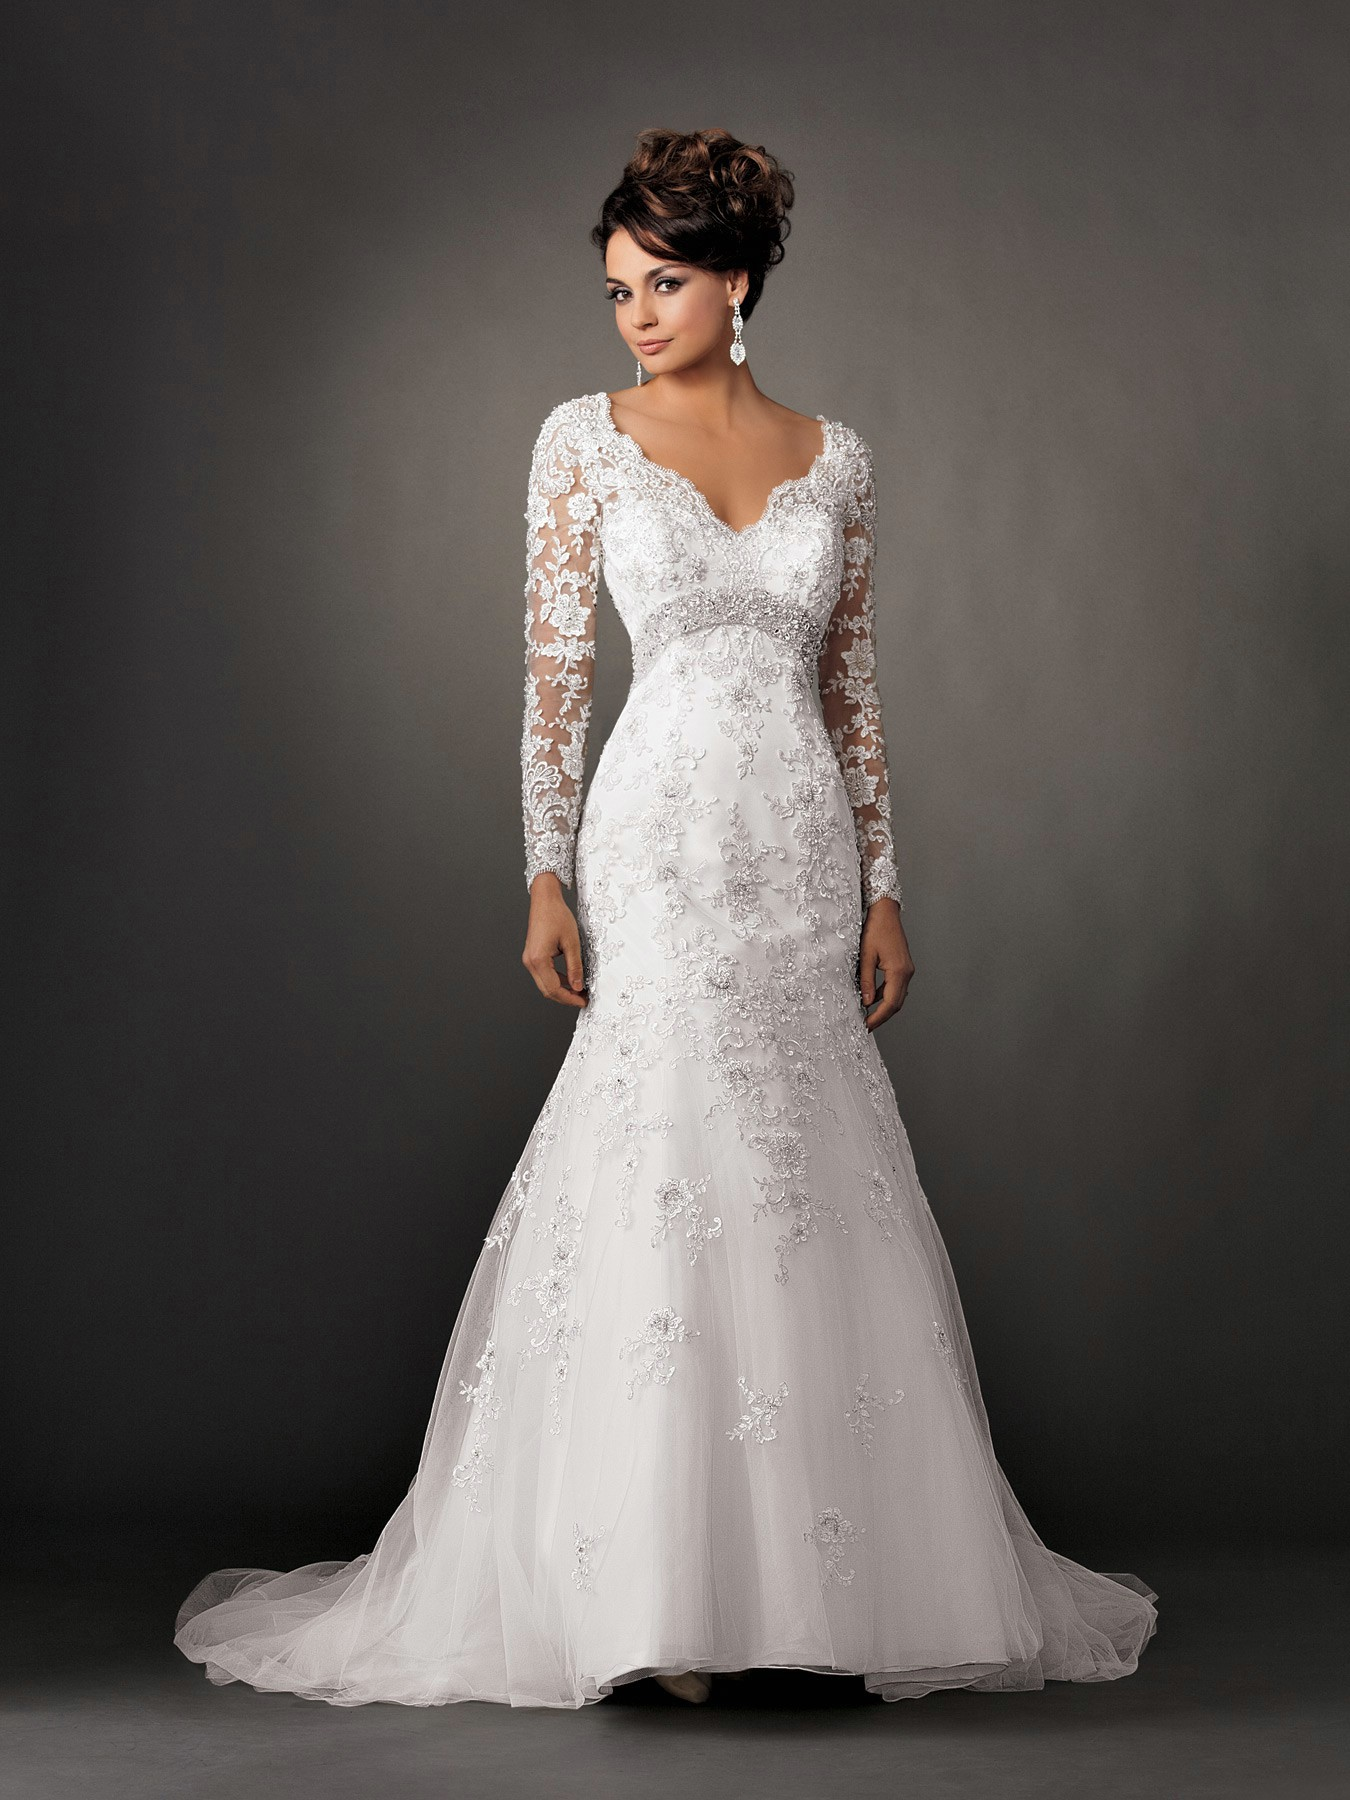 fall lace wedding dress with sleeves sangmaestro With long lace wedding dress